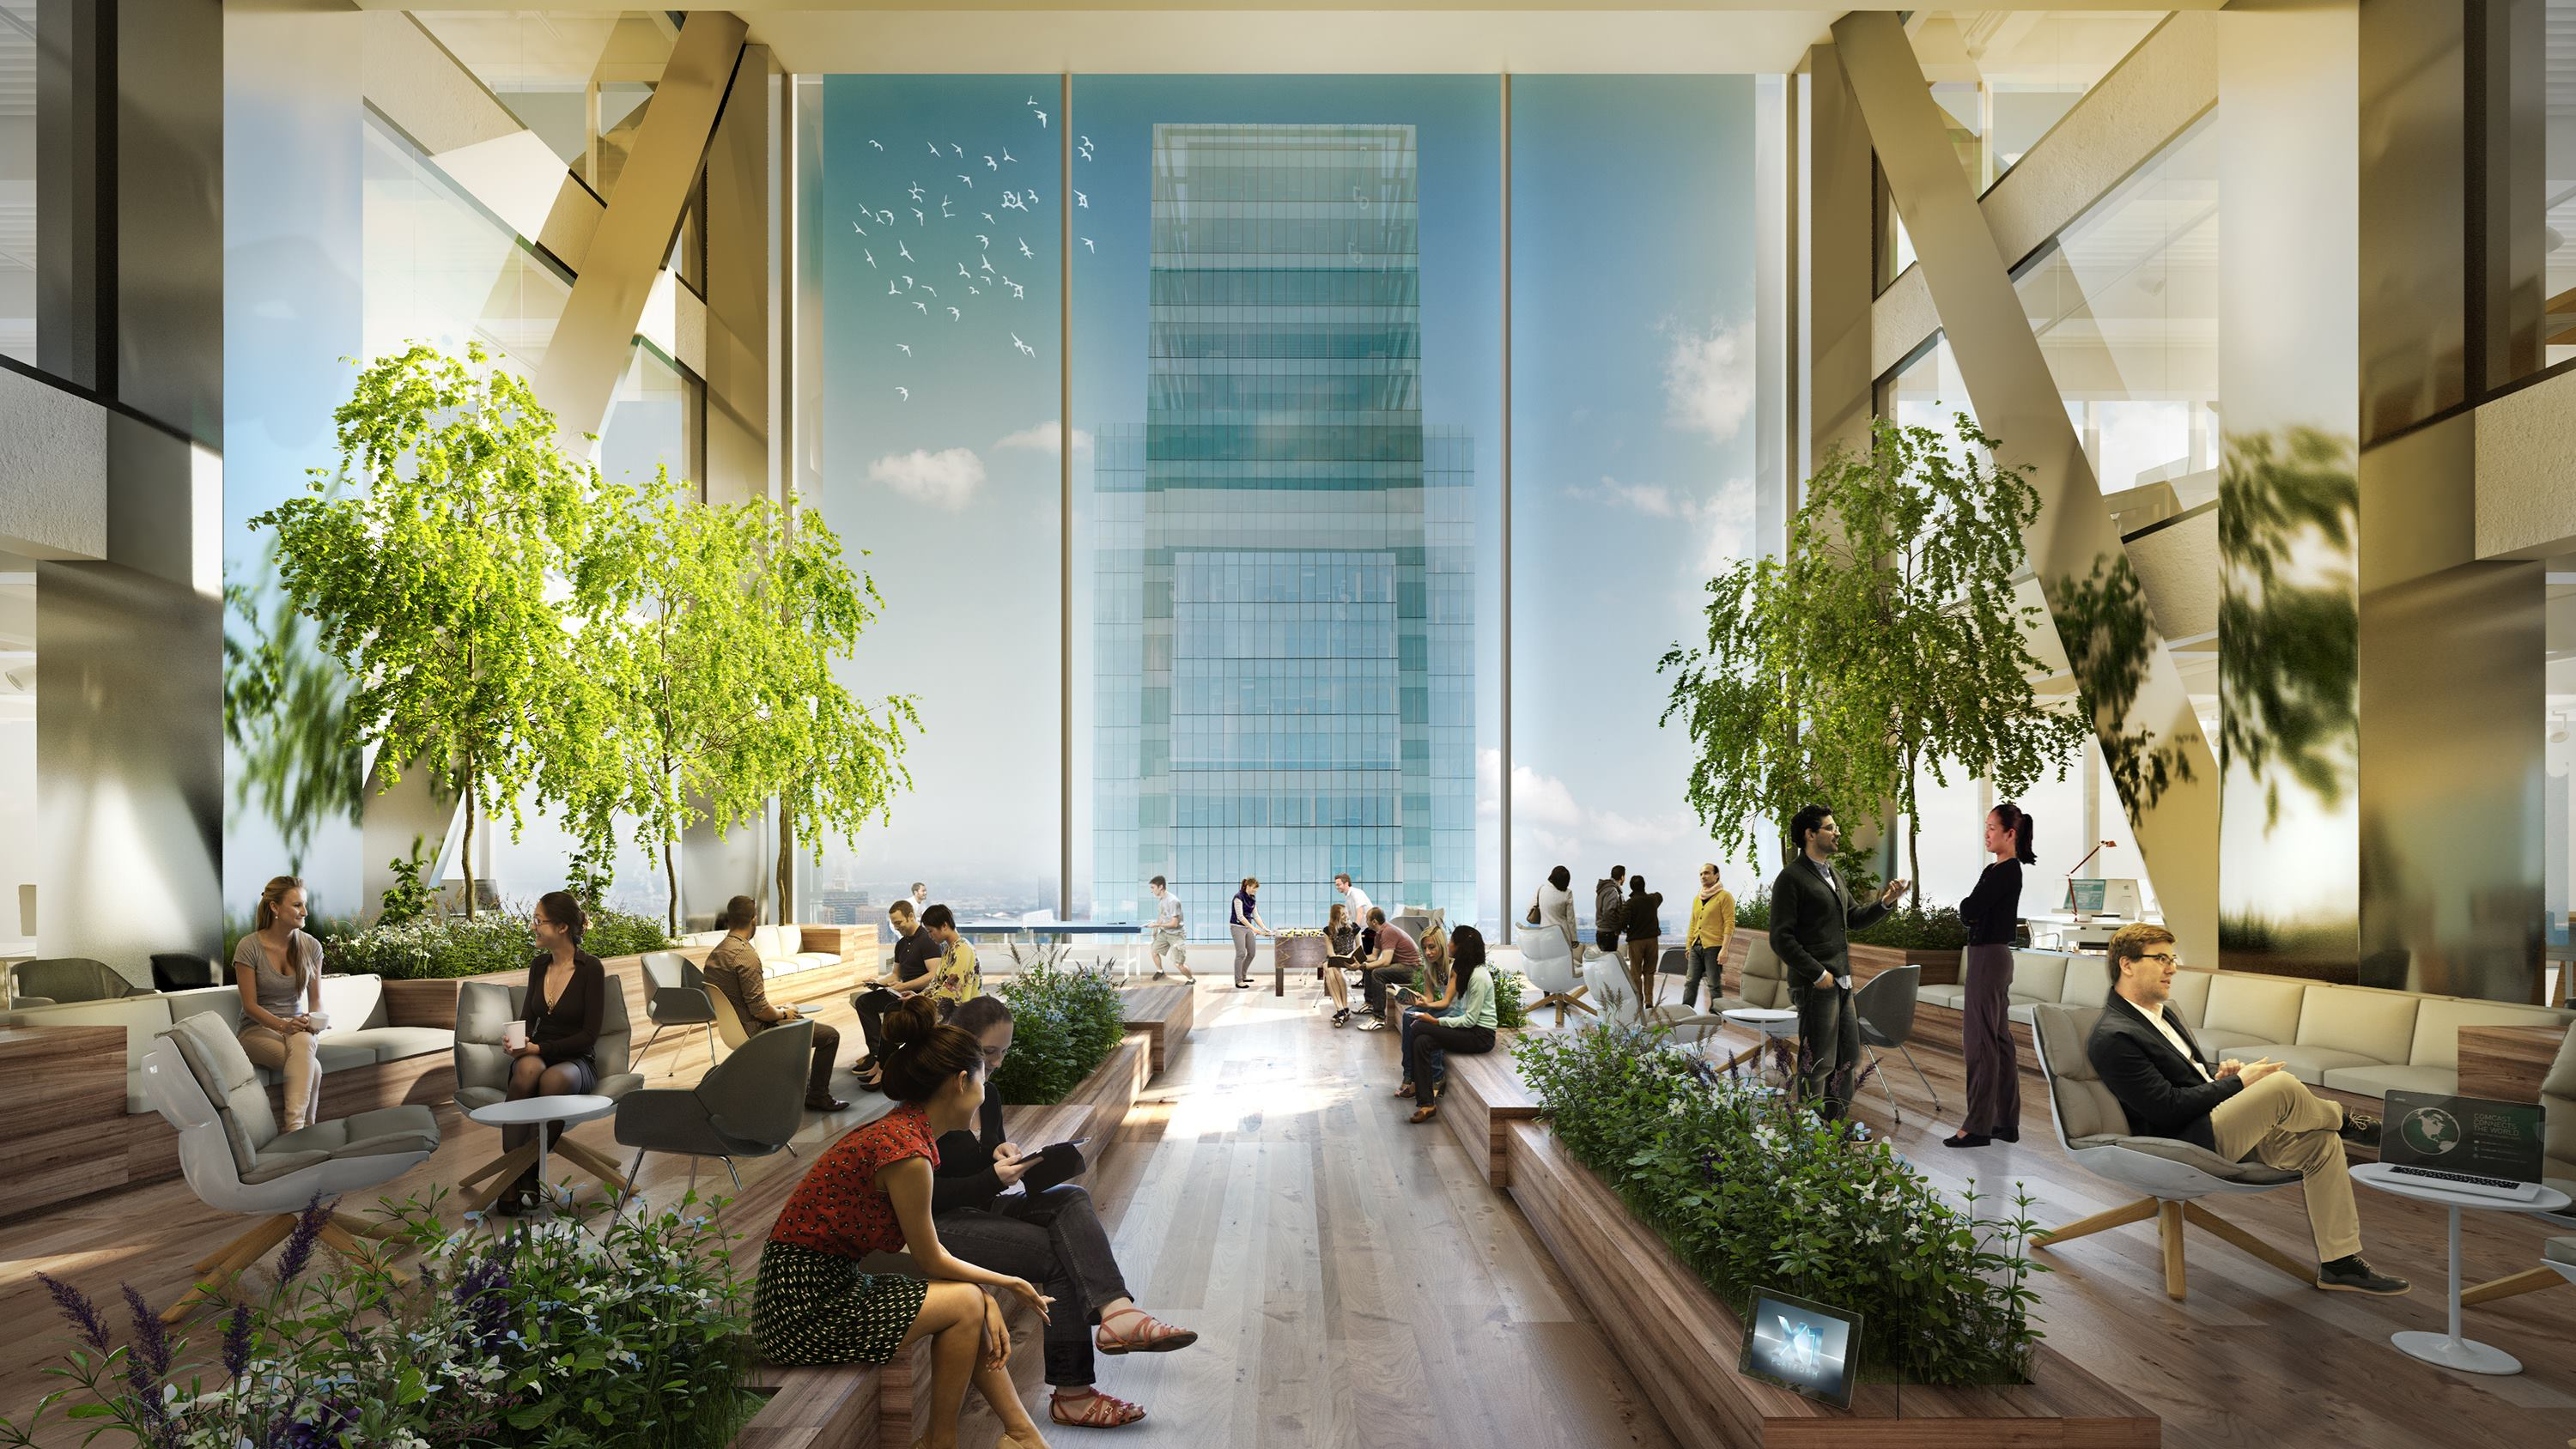 Comcast picks gensler to design interiors of new philadelphia tower architect magazine Philadelphia interior design firms